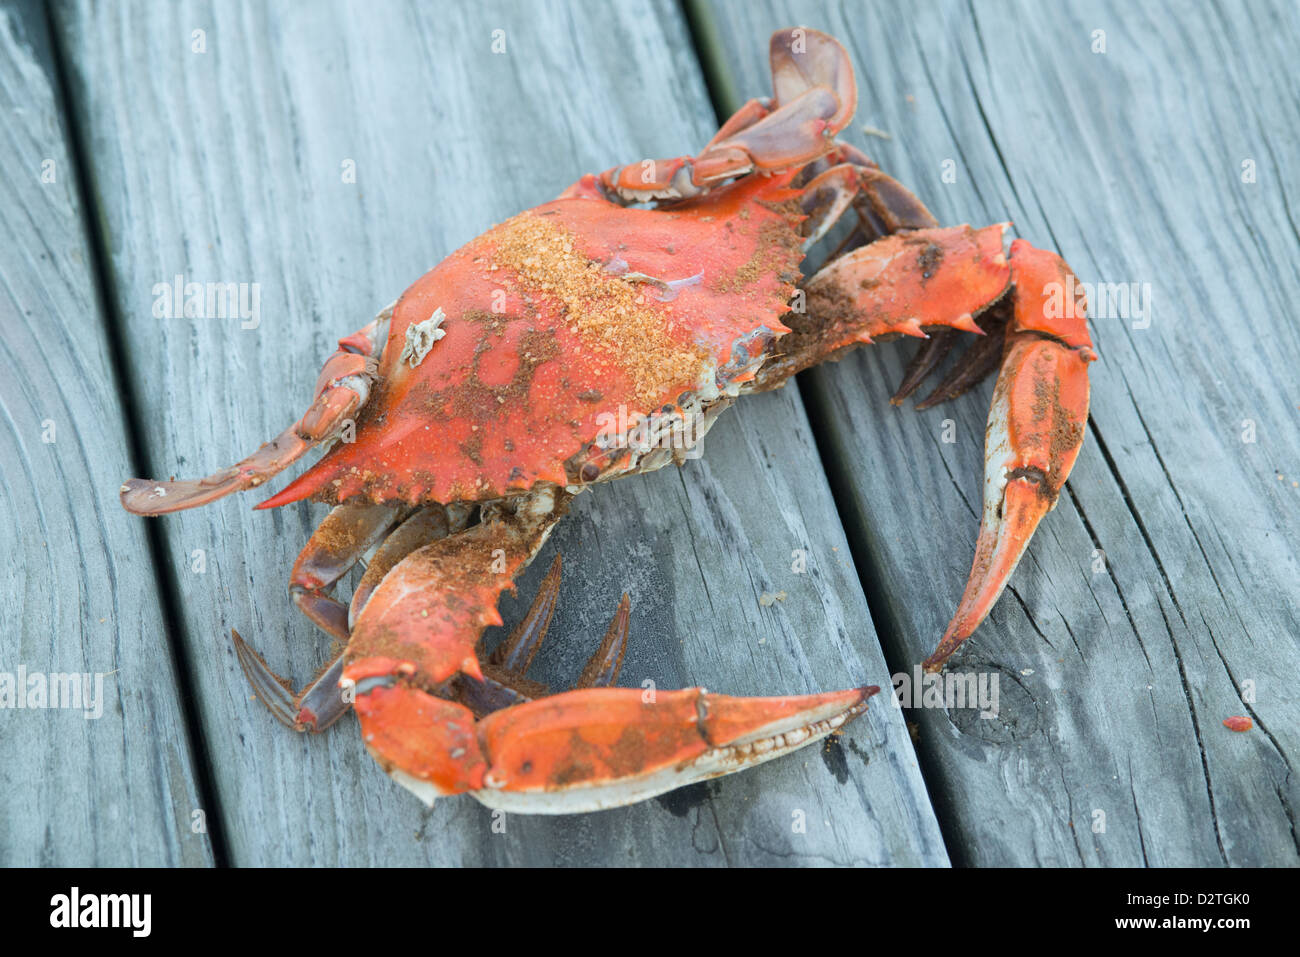 Steamed crabs with Old Bay seasoning on a pier by the shoreline - Stock Image